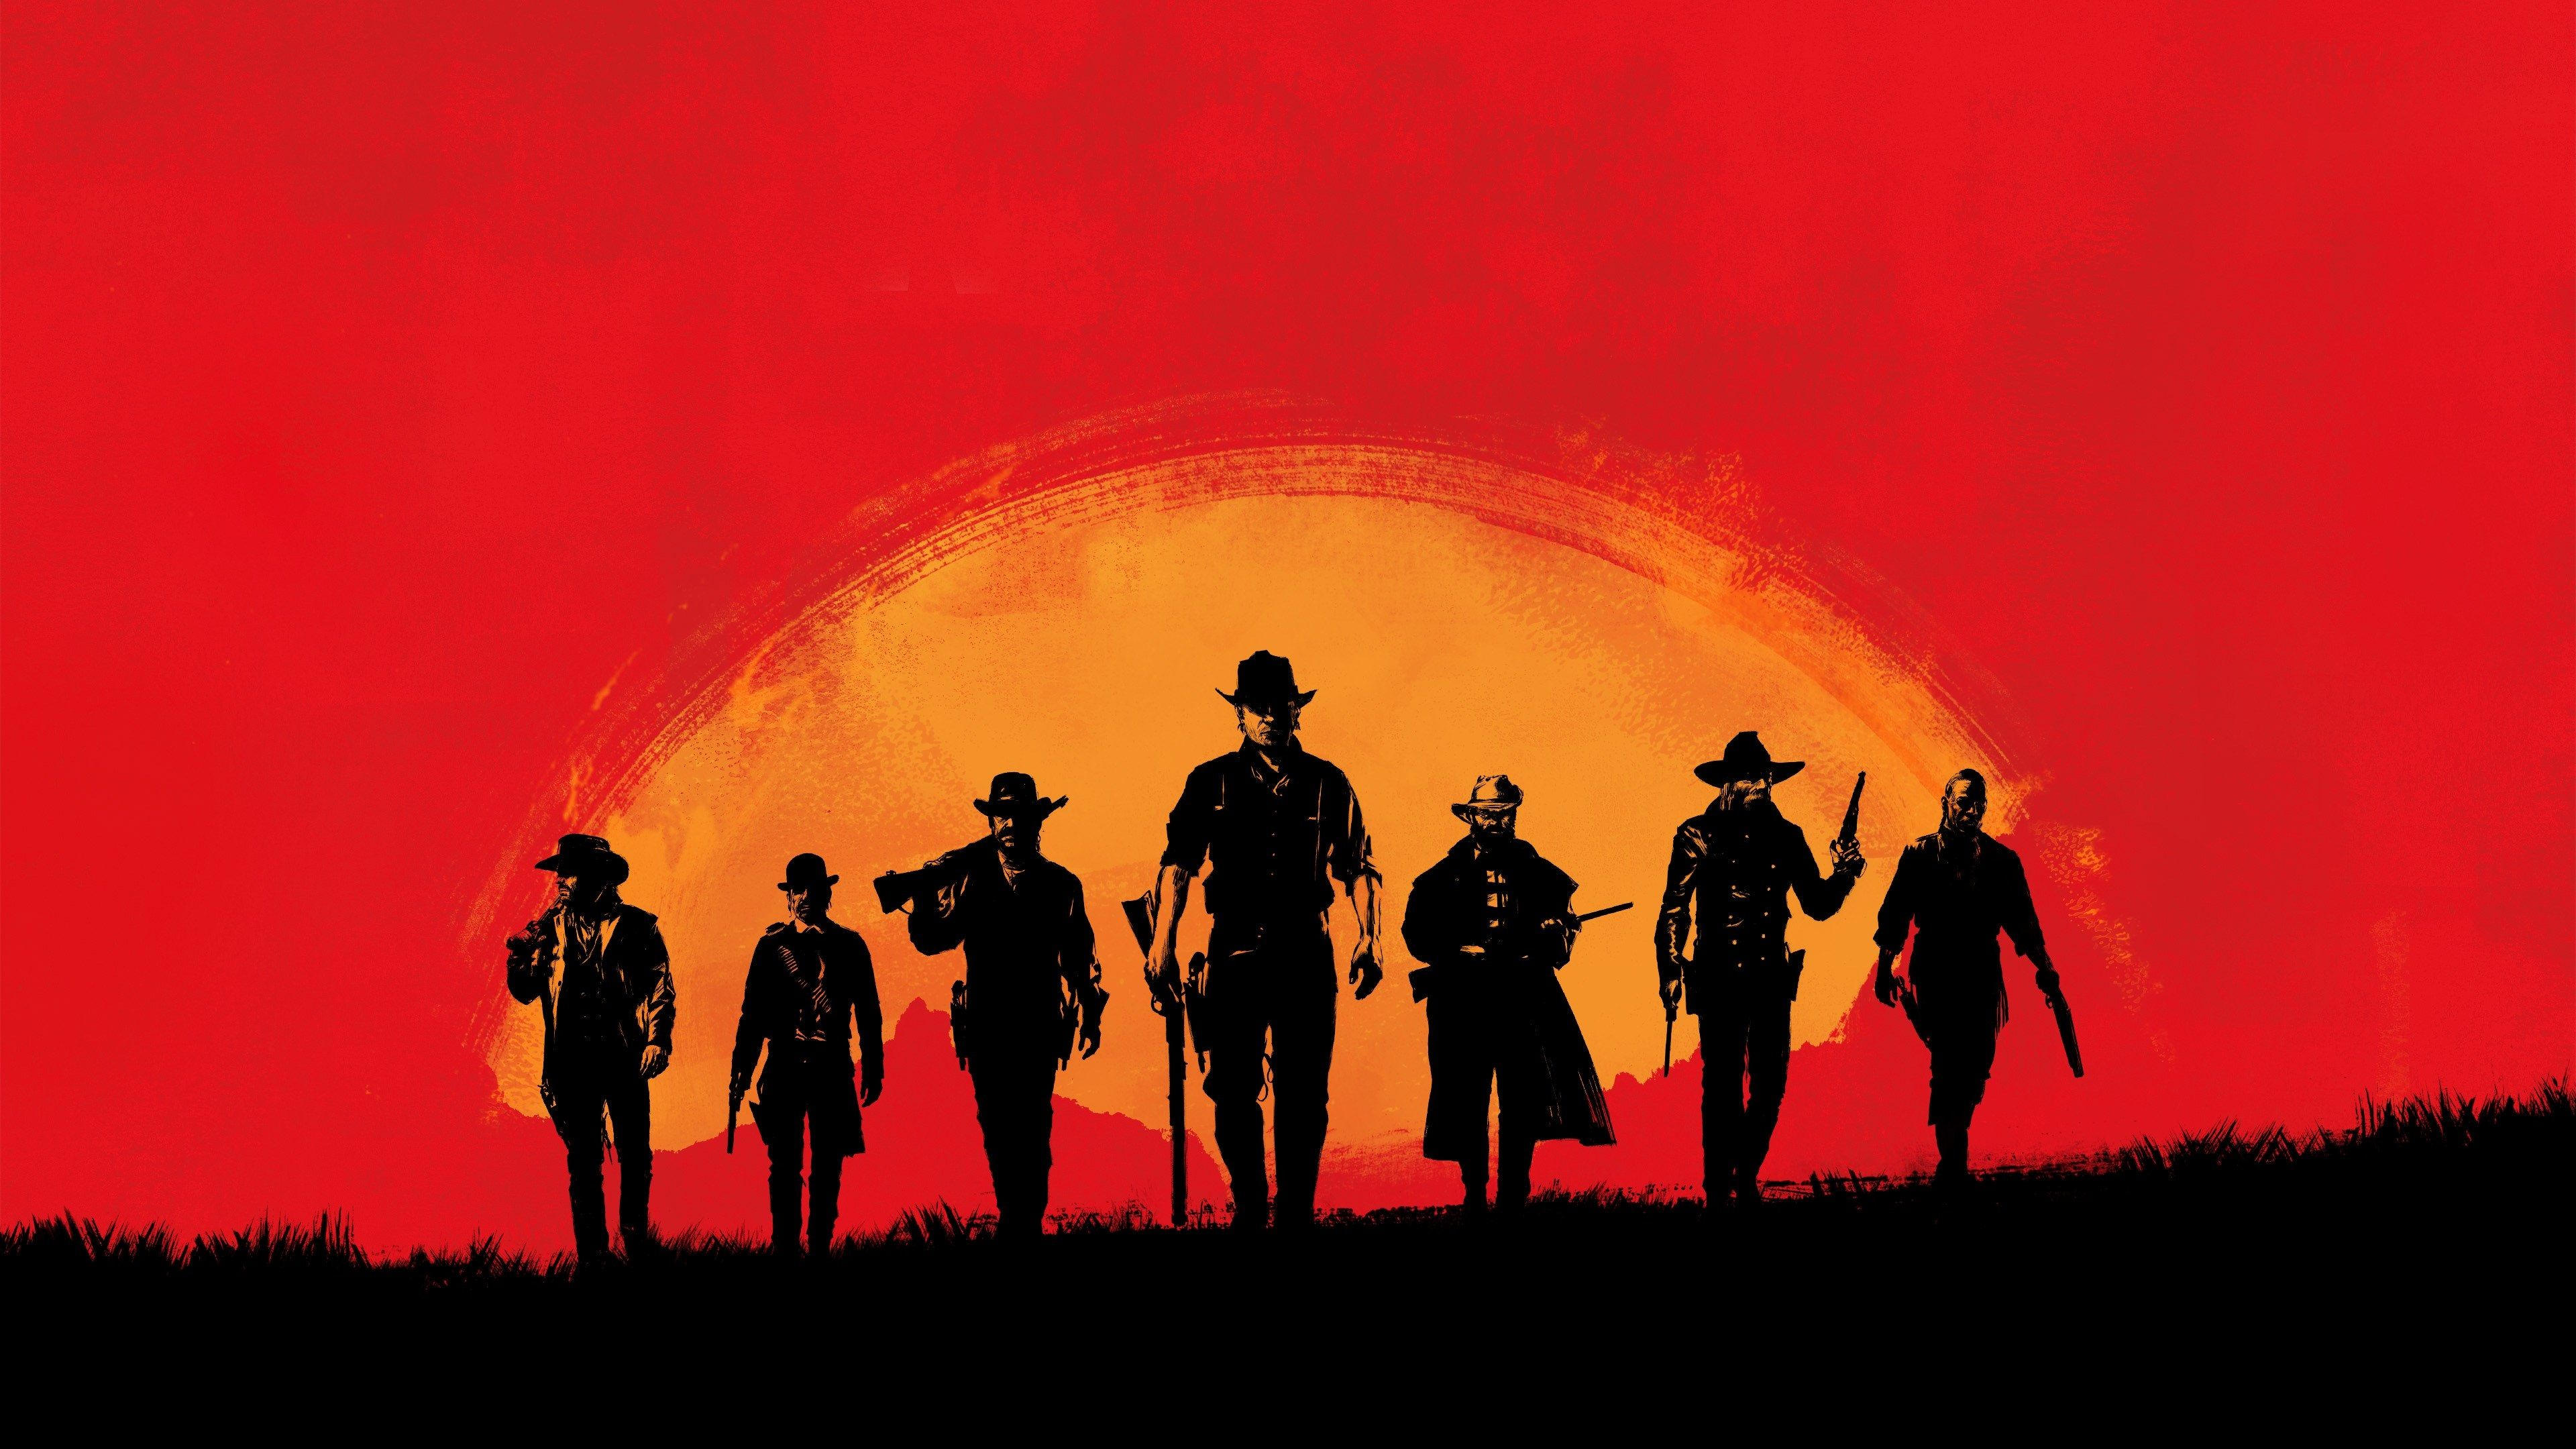 Red Dead Redemption Legends And Killers Pack 2010